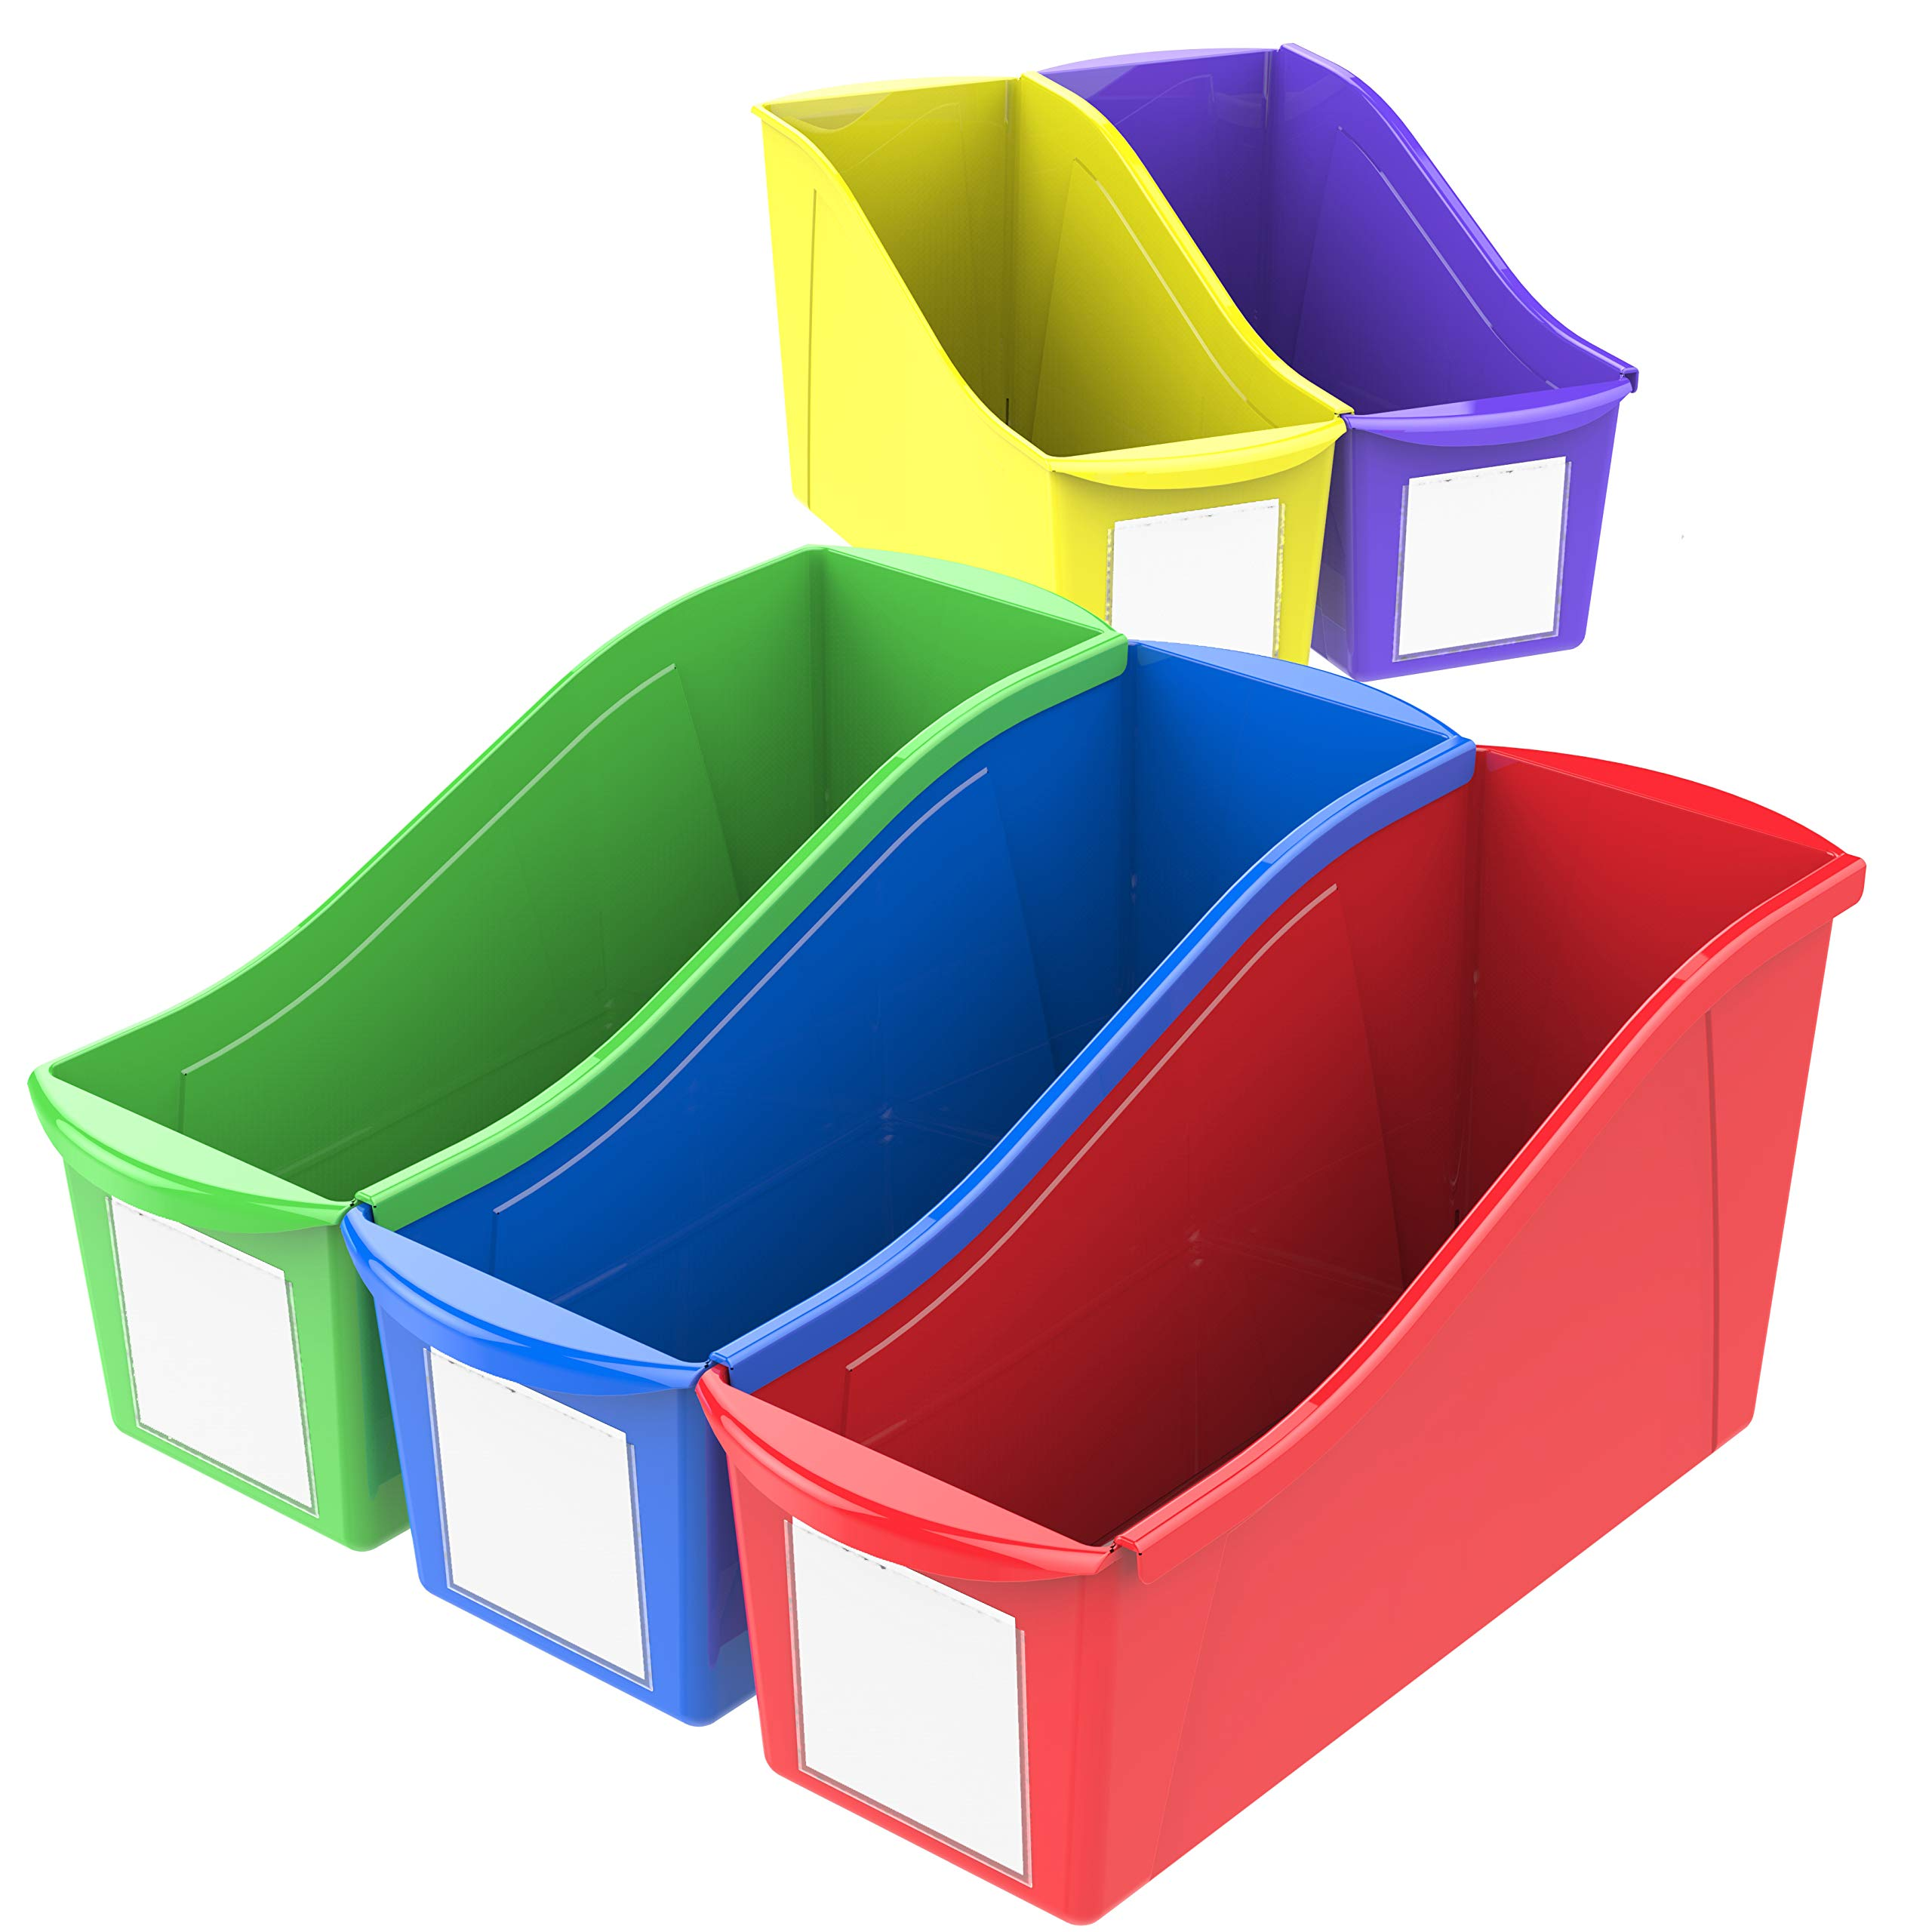 Storex Large Book Bins, 14.3 x 5.3 x 7.1 Inches, Assorted Colors, 30-Pack by Storex